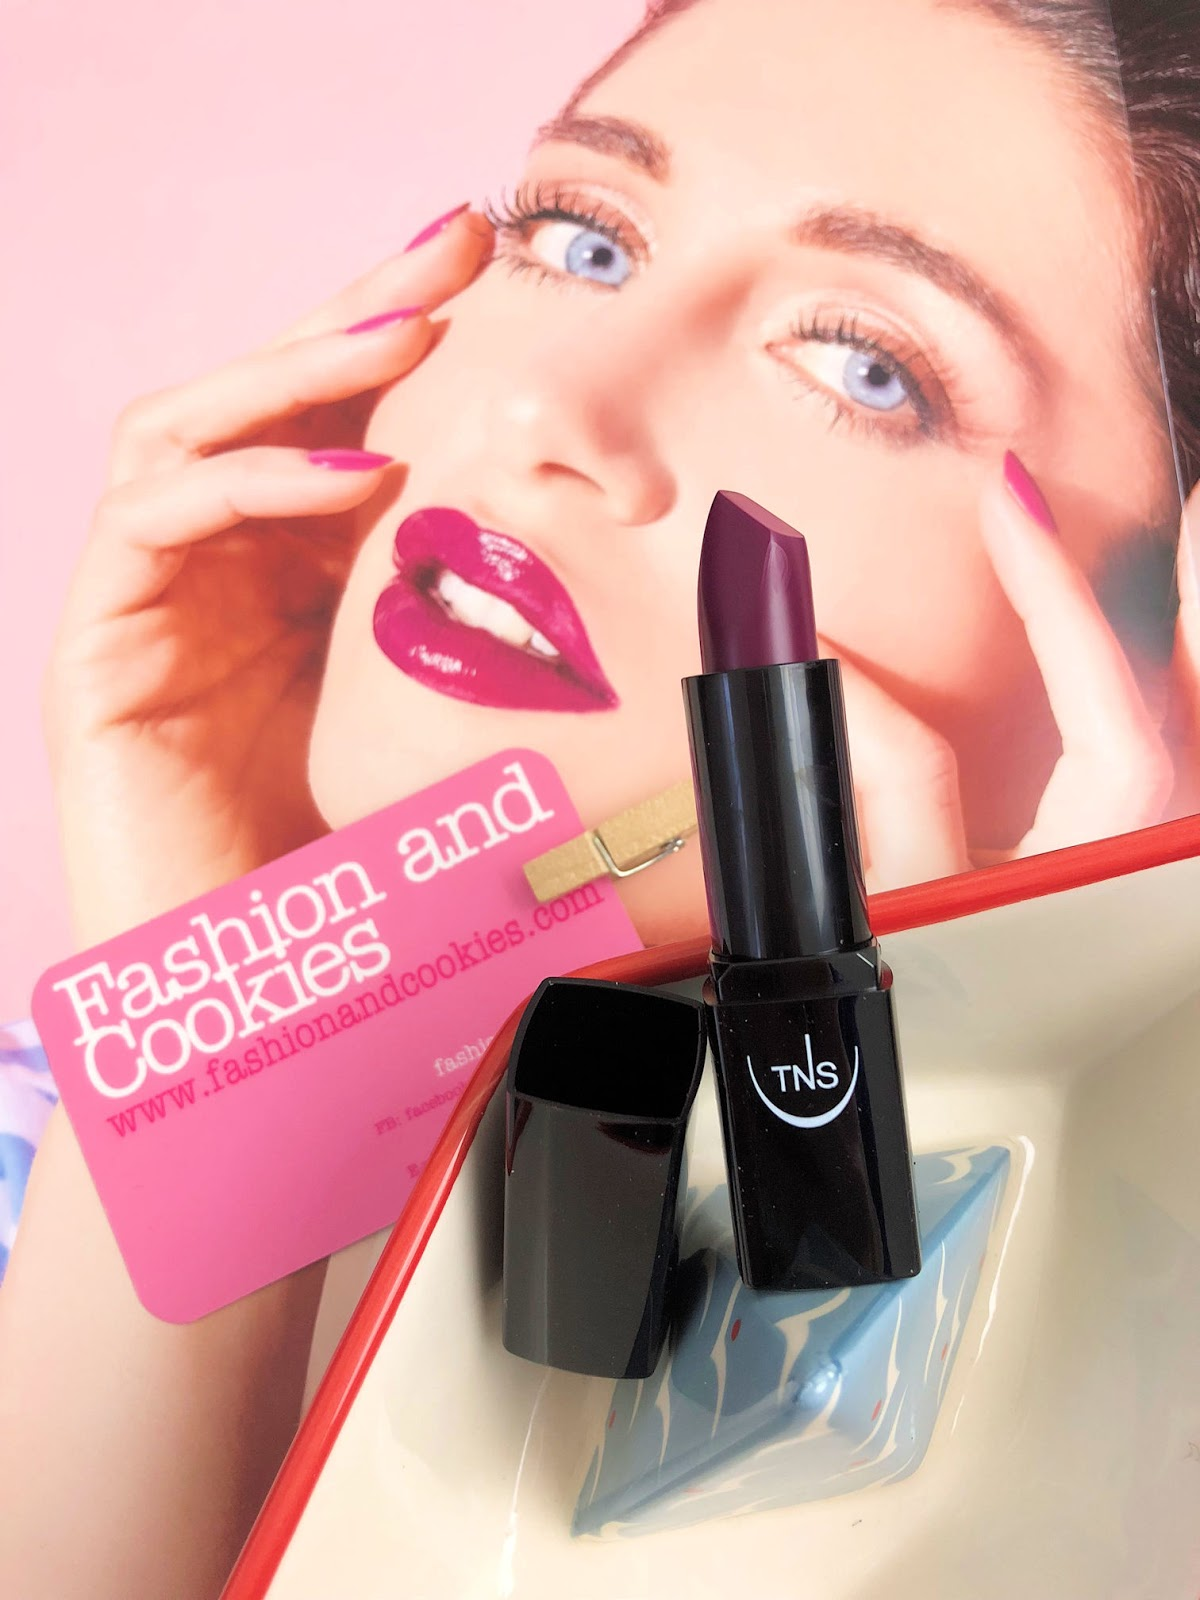 TNS rossetto Venere su Fashion and Cookies beauty blog, beauty blogger